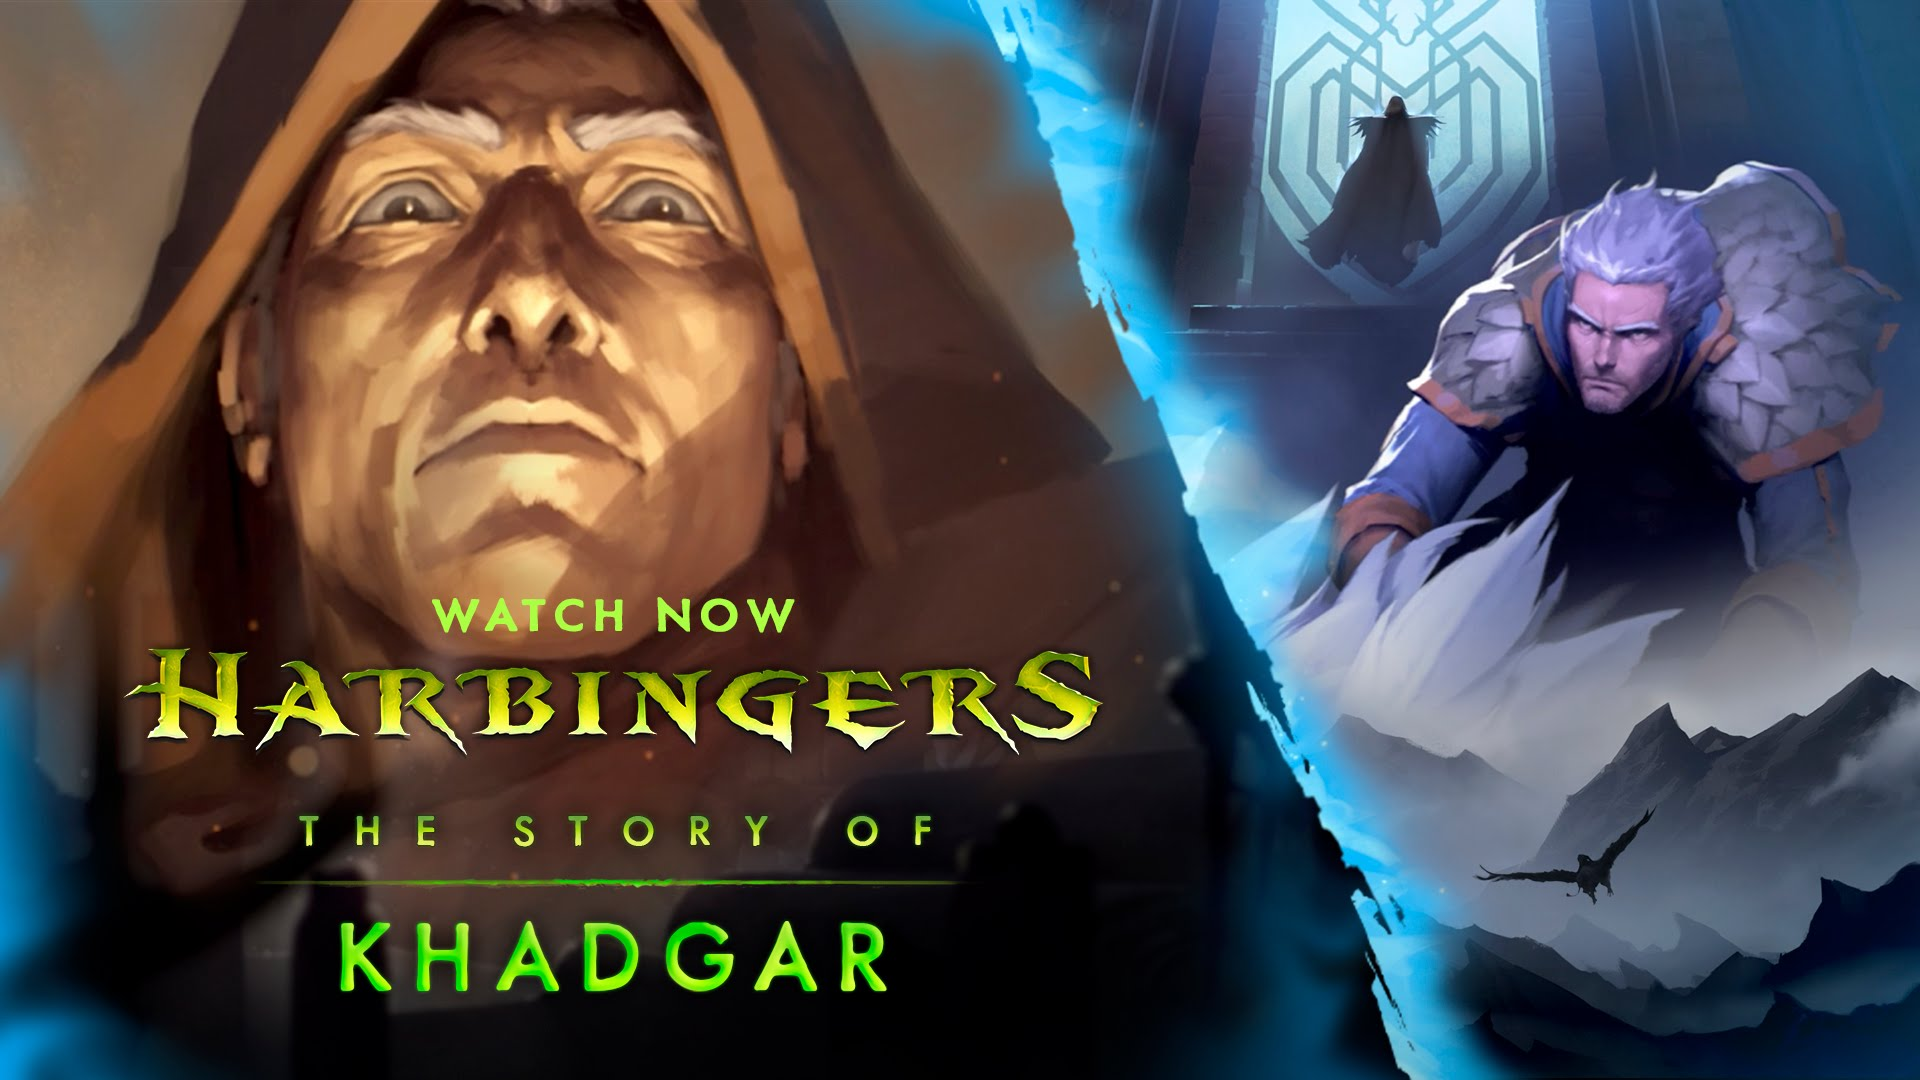 World of Warcraft - Harbingers - Khadgar